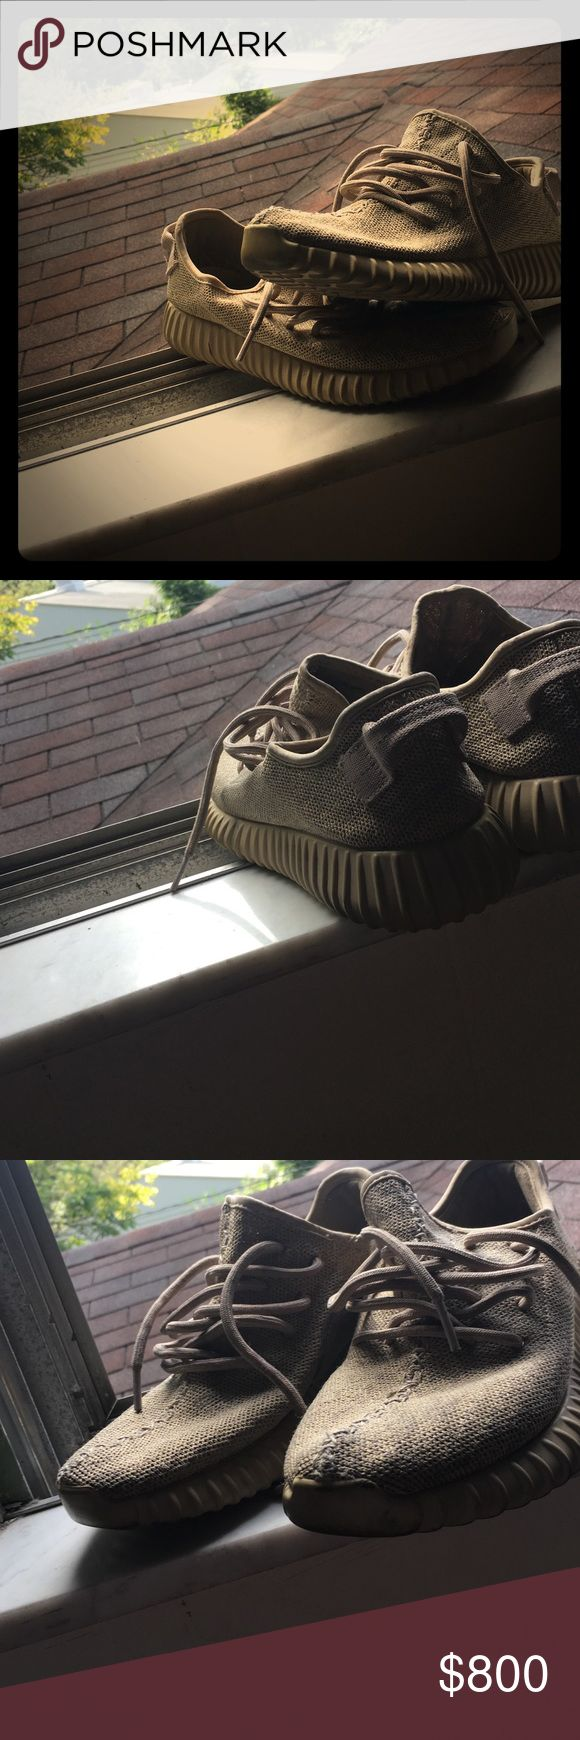 Kanye West Yeezy Boost 350 Oxford Tan Oxford Tan. Bought it originally from Adidas.com. Costed me about $1,000 but selling it $800 since I need money for my rent. Super comfortable. Yeezy Shoes Sneakers